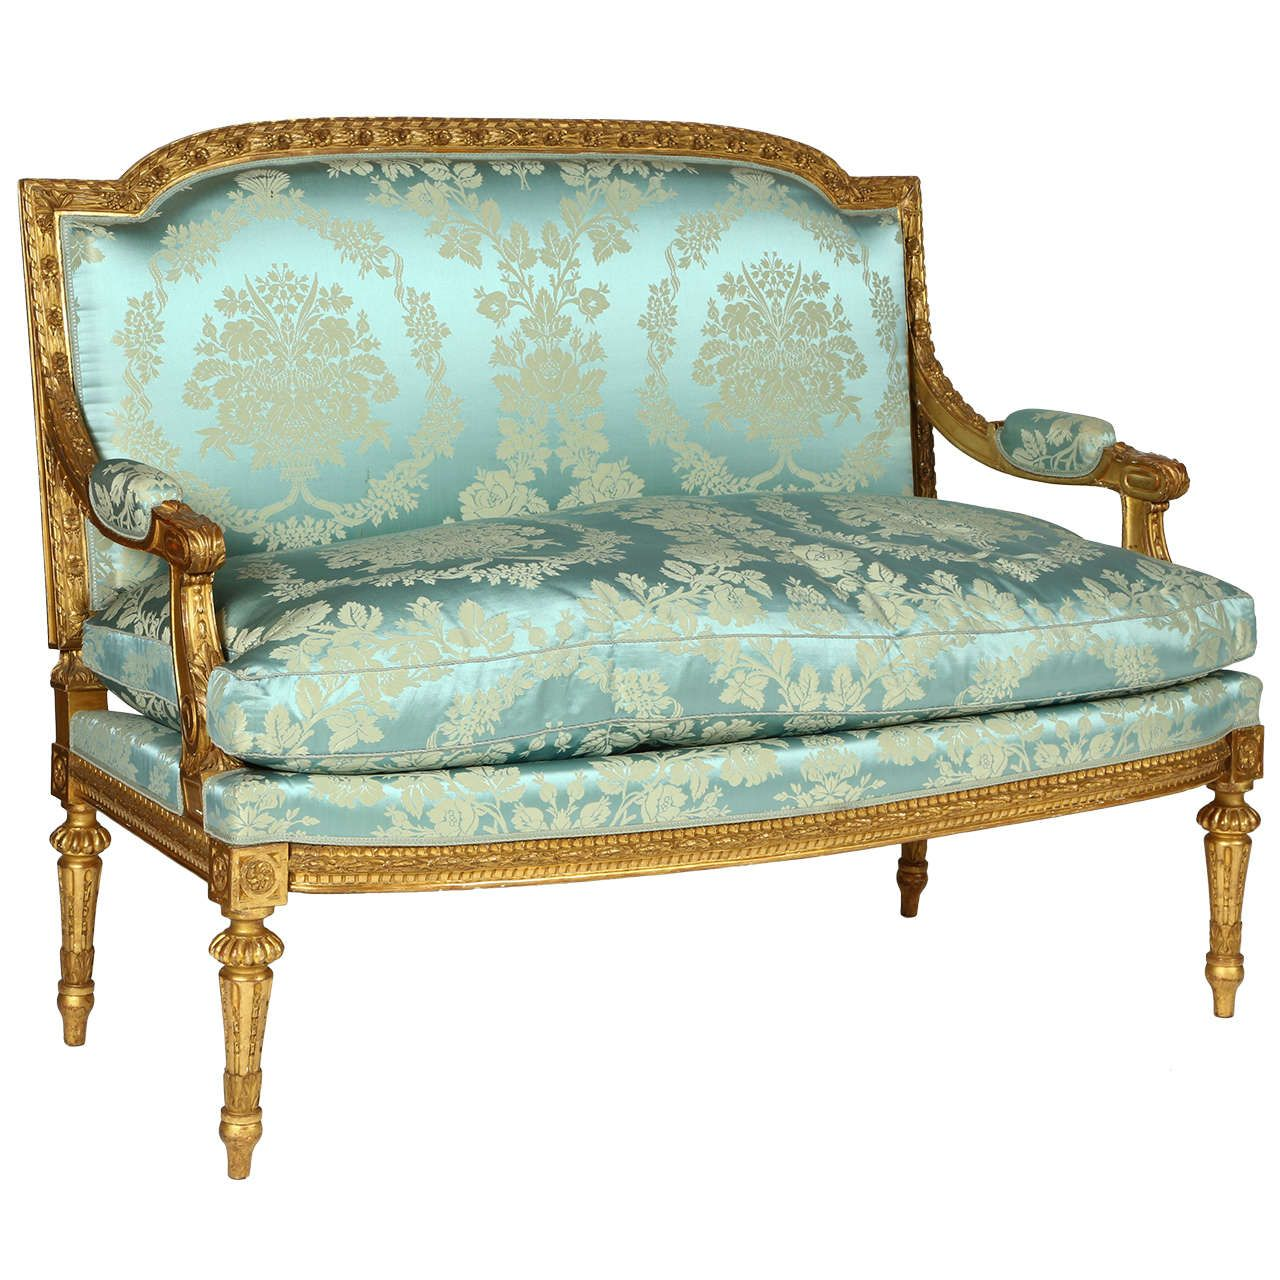 Antique Victorian Sofa Styles: Pin By Lazarus Douvos On French Interiors French Style